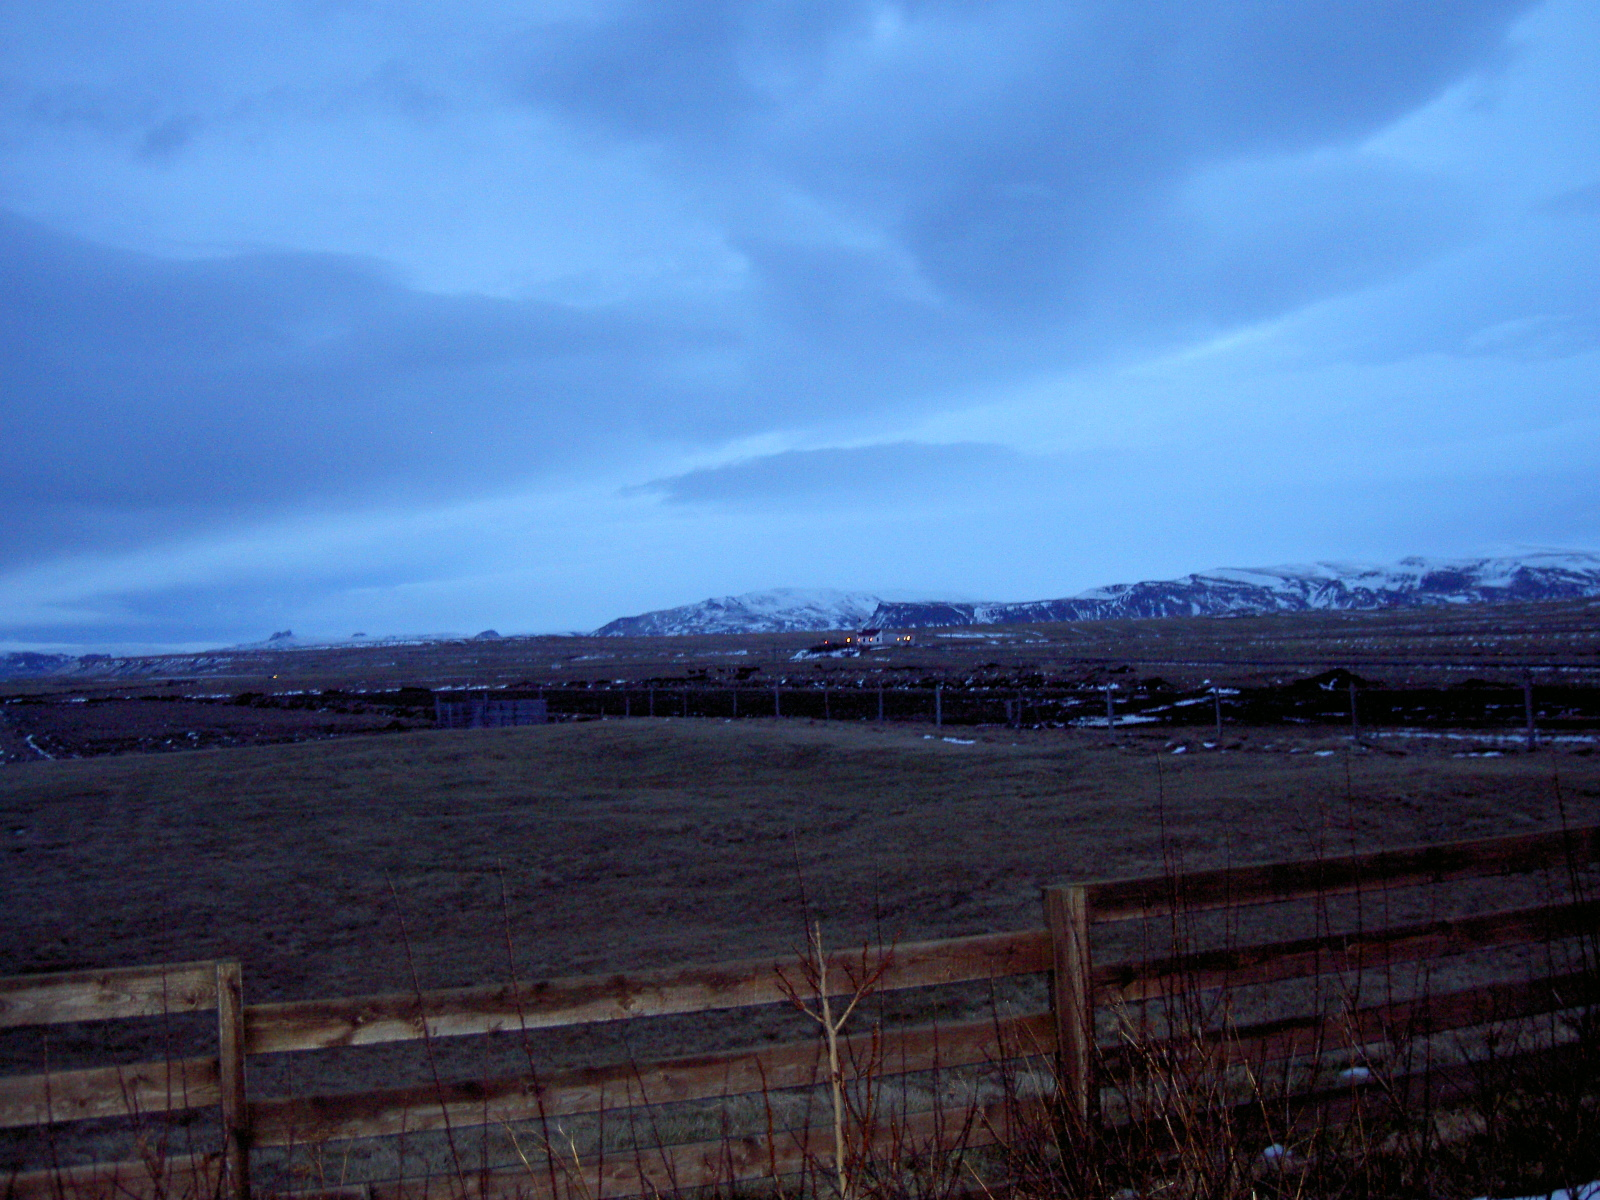 View from Thurranes guesthouse (purpose of page is to display an image)